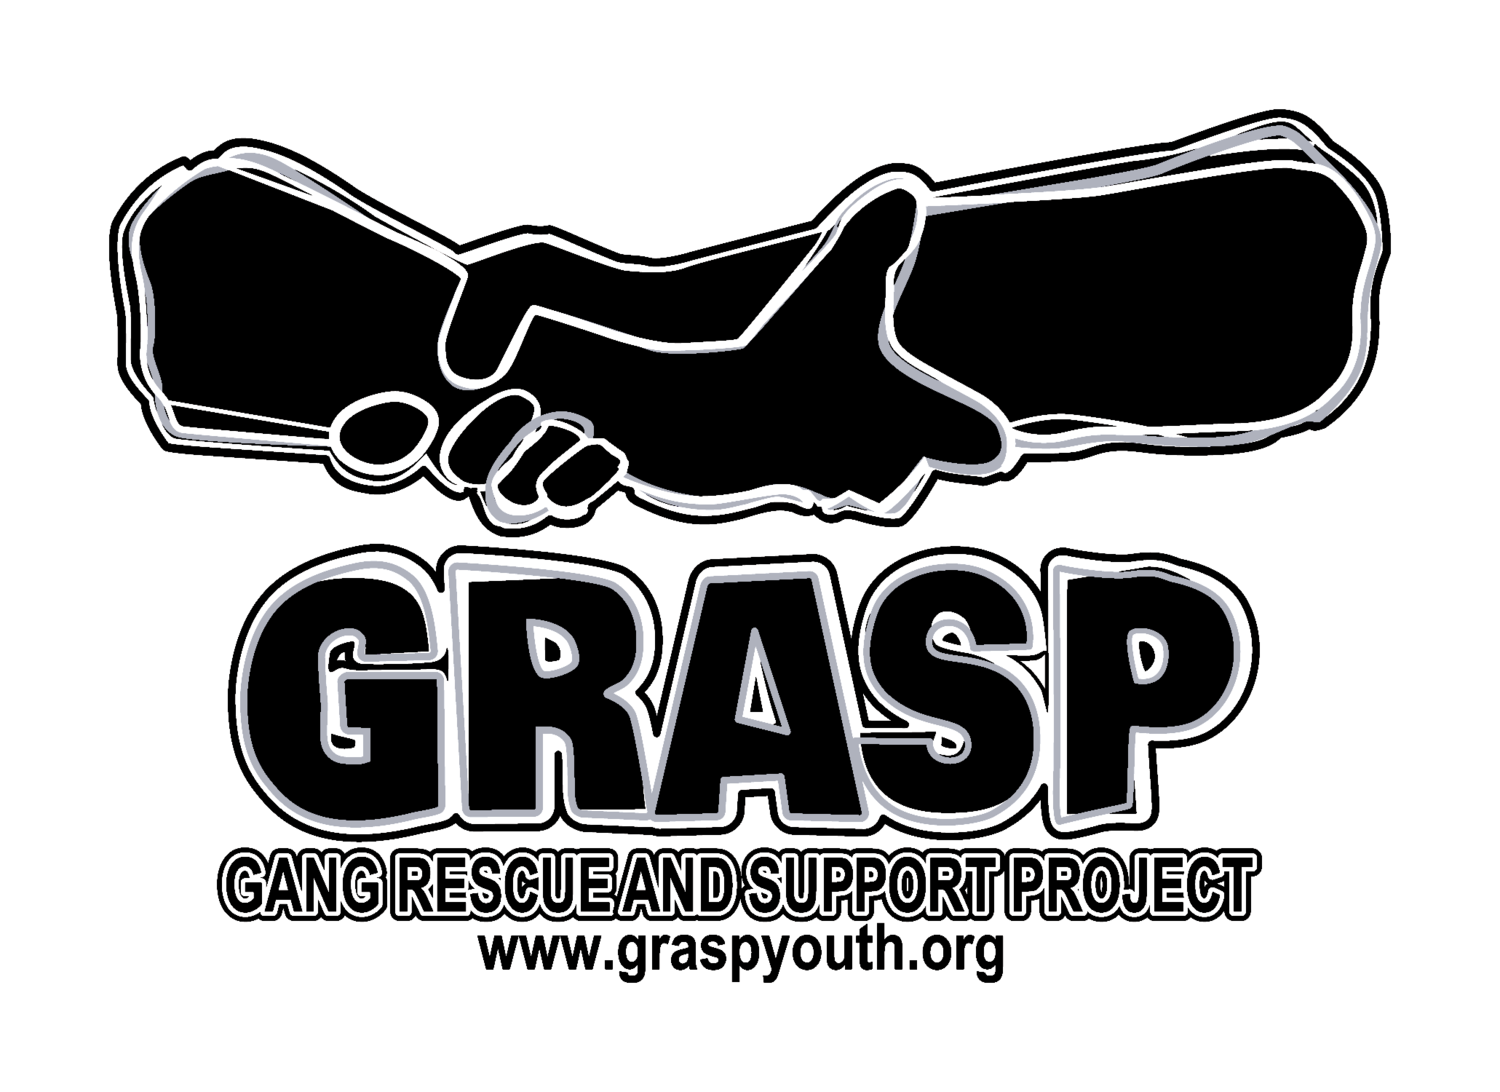 GRASP|Gang Rescue and Support Project